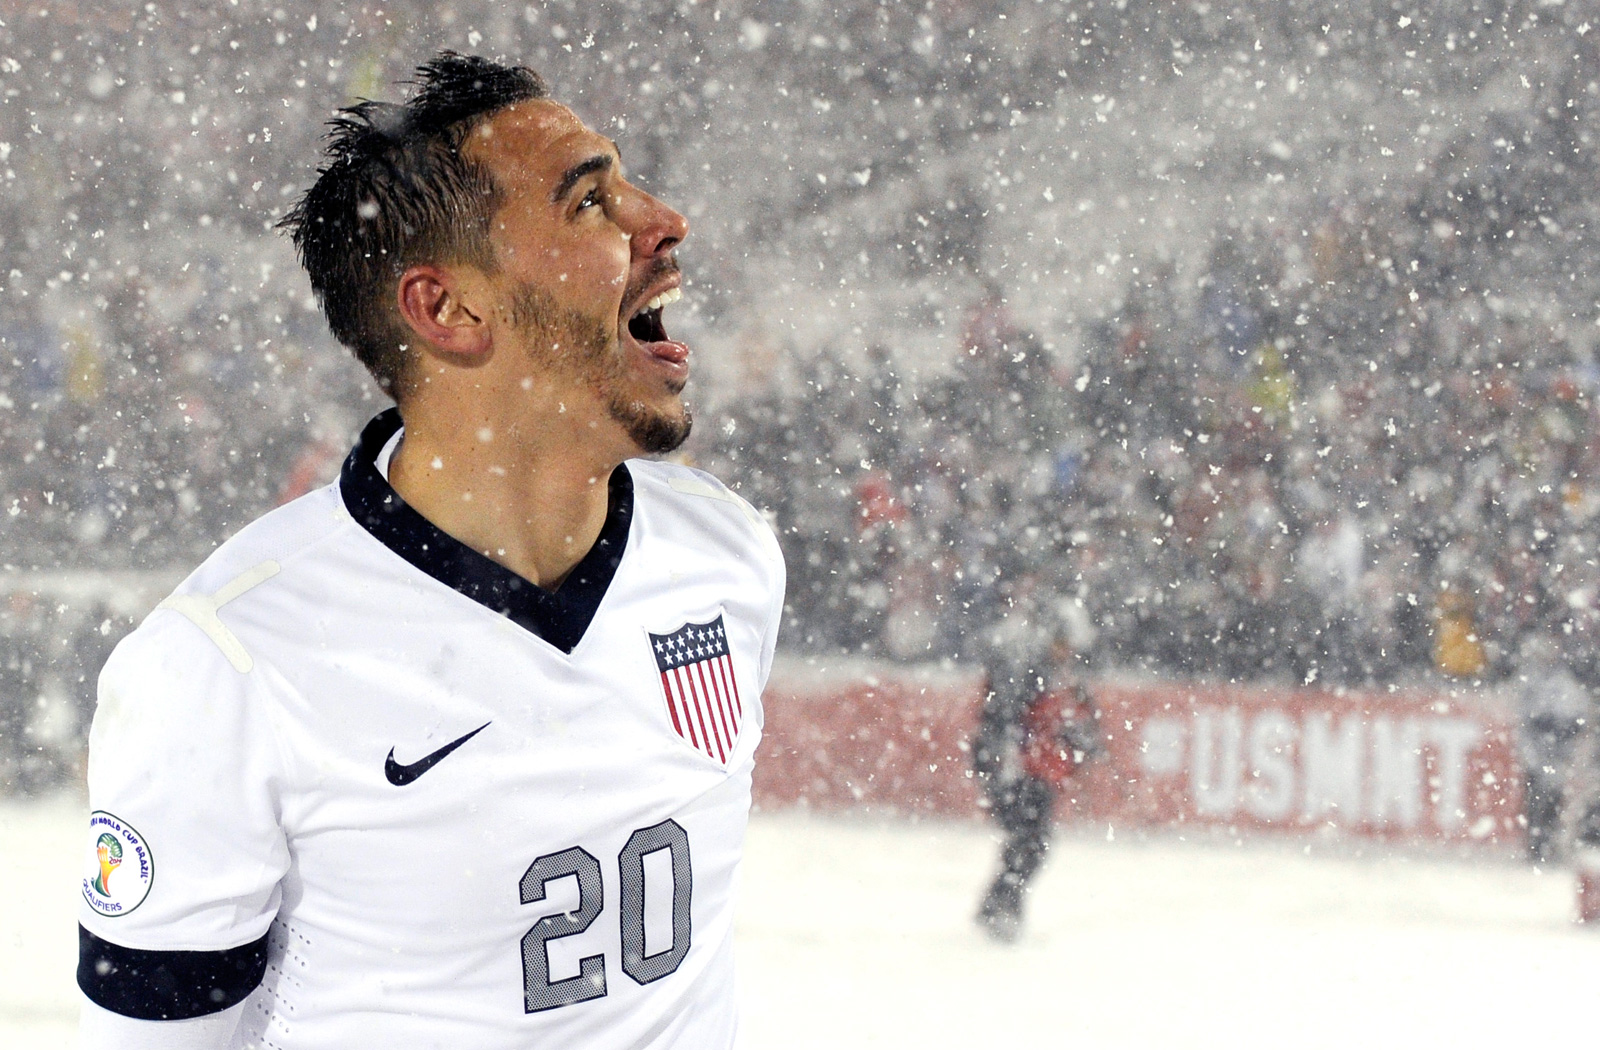 USA's Geoff Cameron in the SnowClasico World Cup qualifier vs. Costa Rica in March 2013 at Colorado's Dick's Sporting Goods Park.